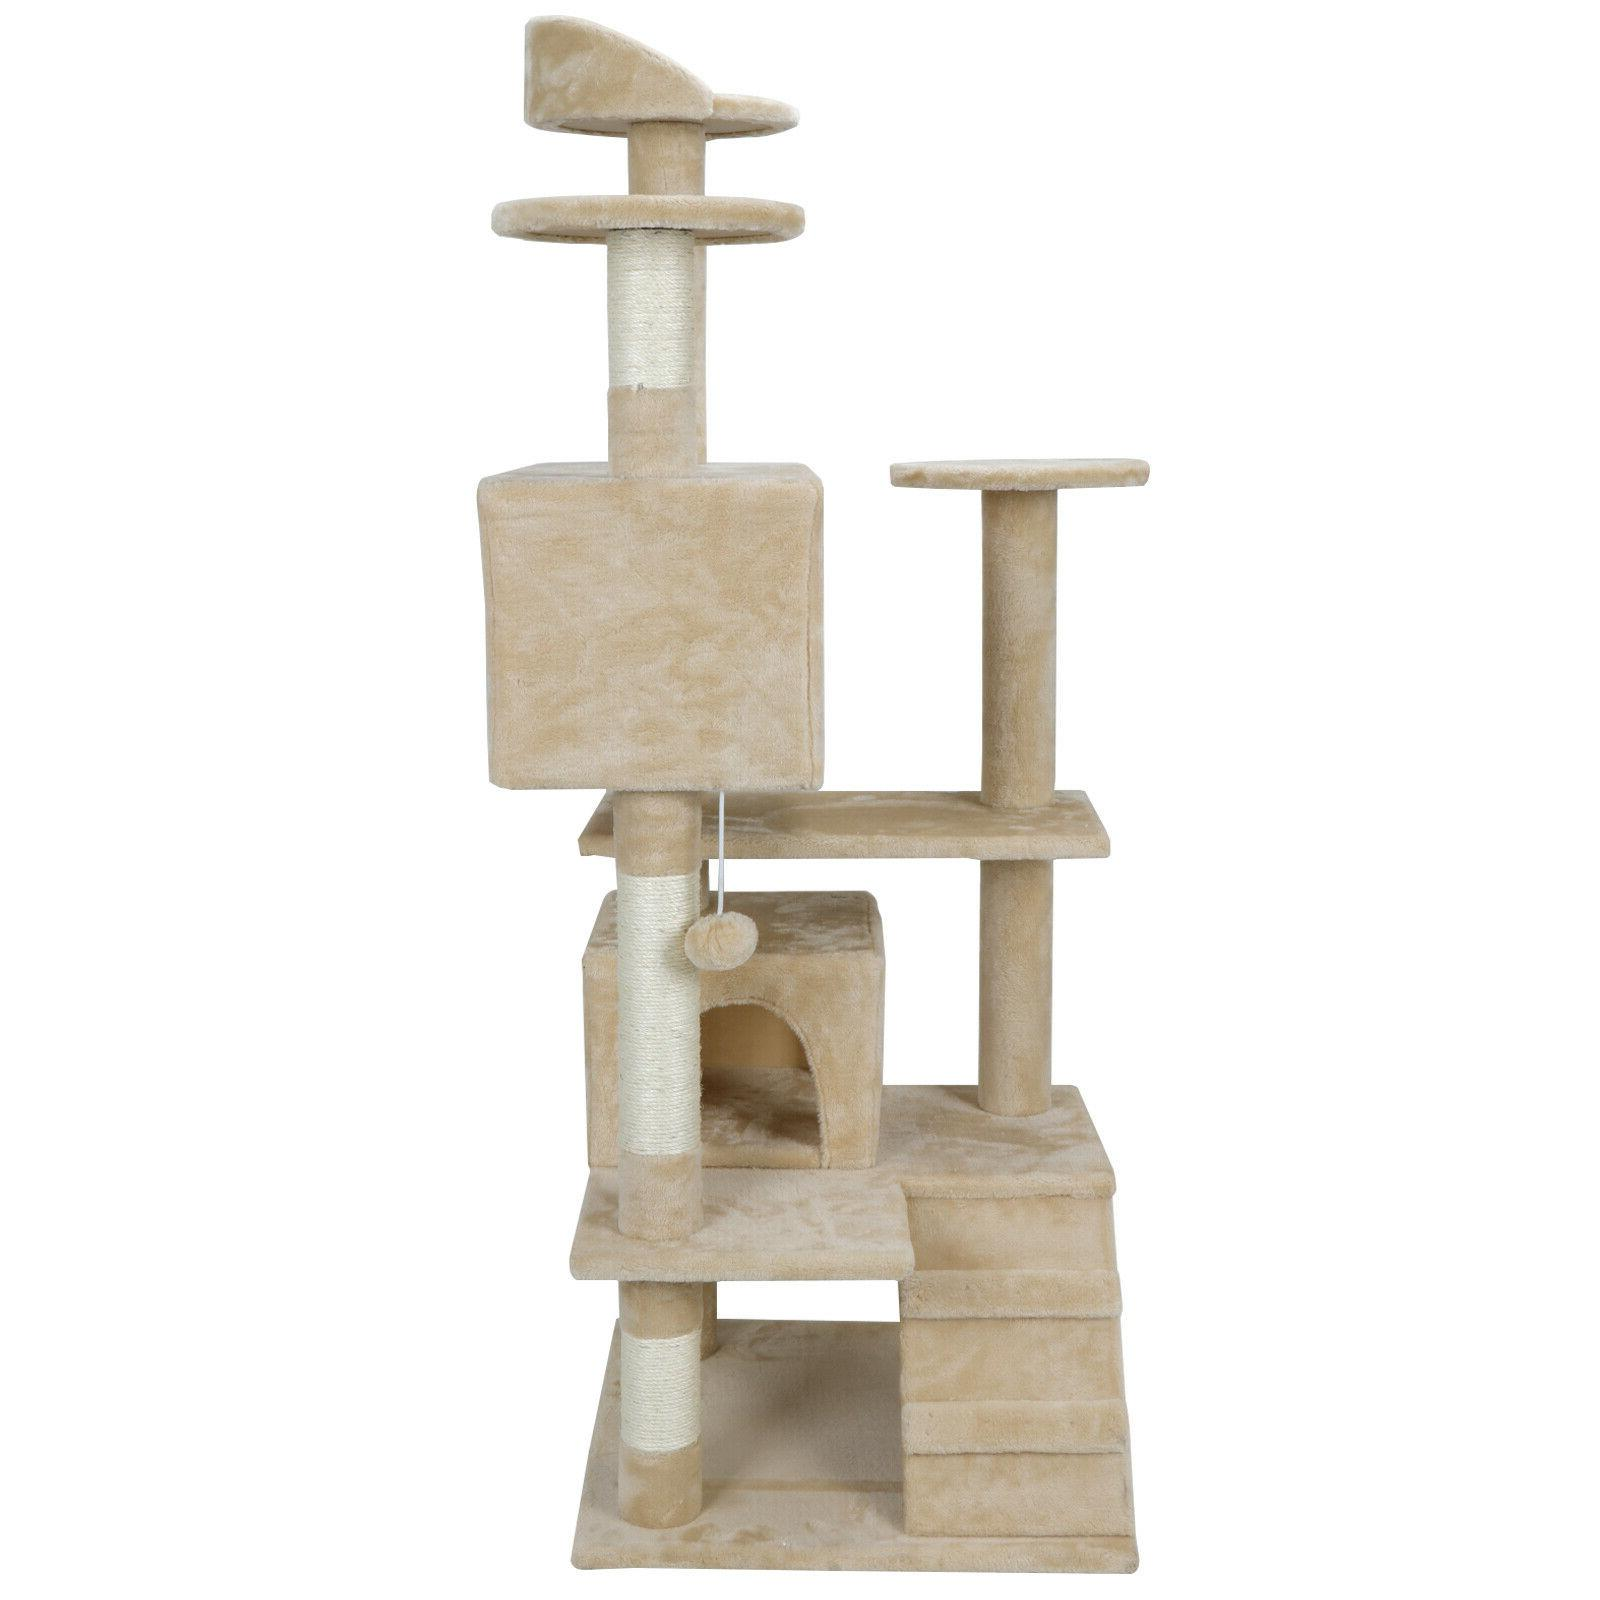 CAT TREE PET HOUSE CAVE WITH SCRACHING POSTS CLIMBING LADDER